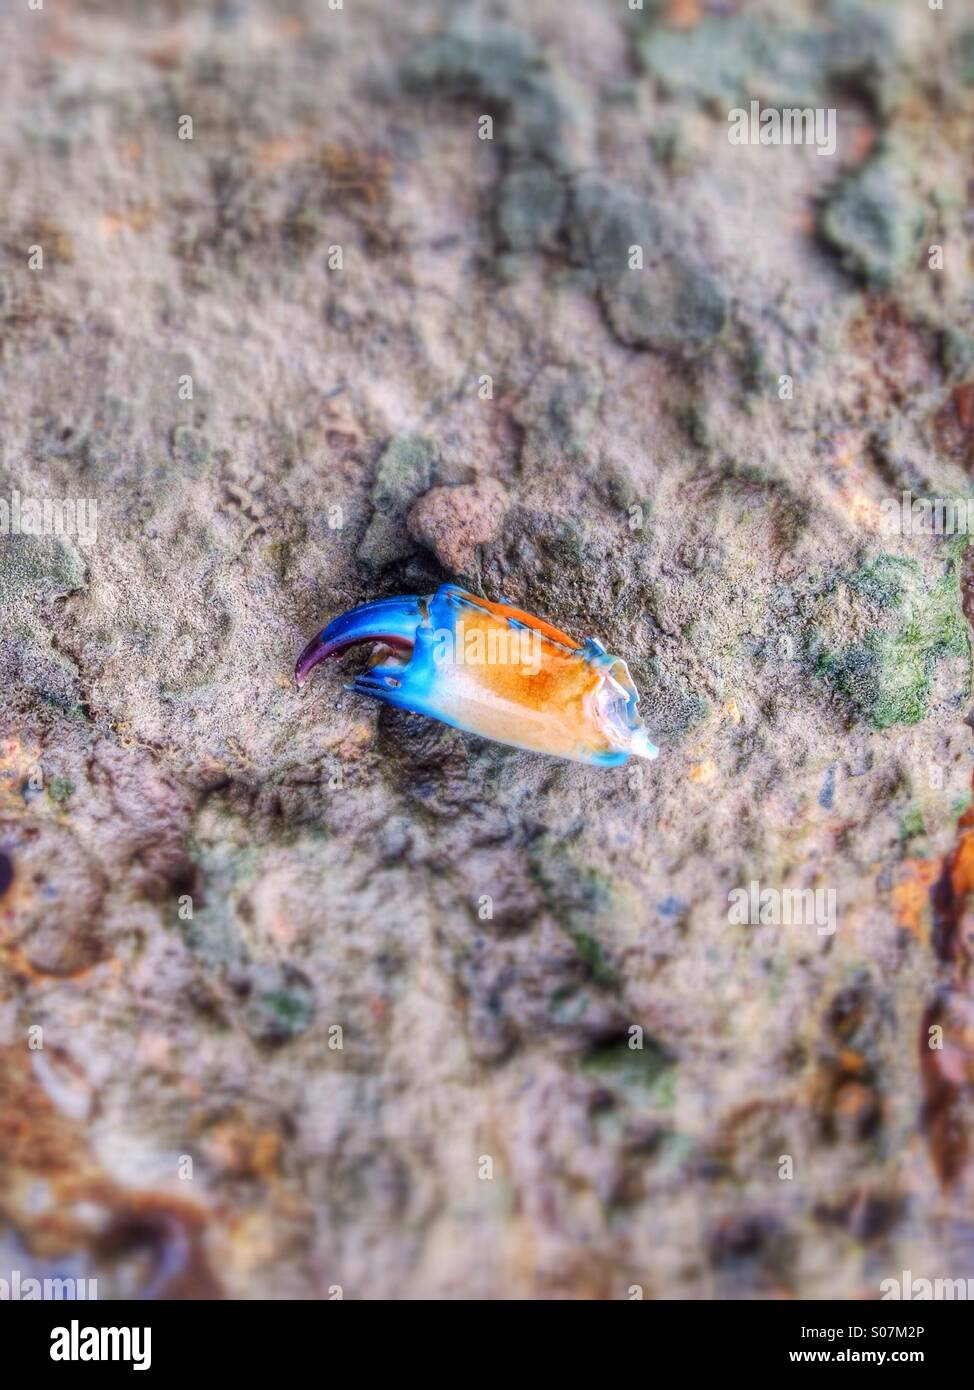 Lost nipper of a Blue Nippers crab, on the rocks, in Northern Australia. - Stock Image